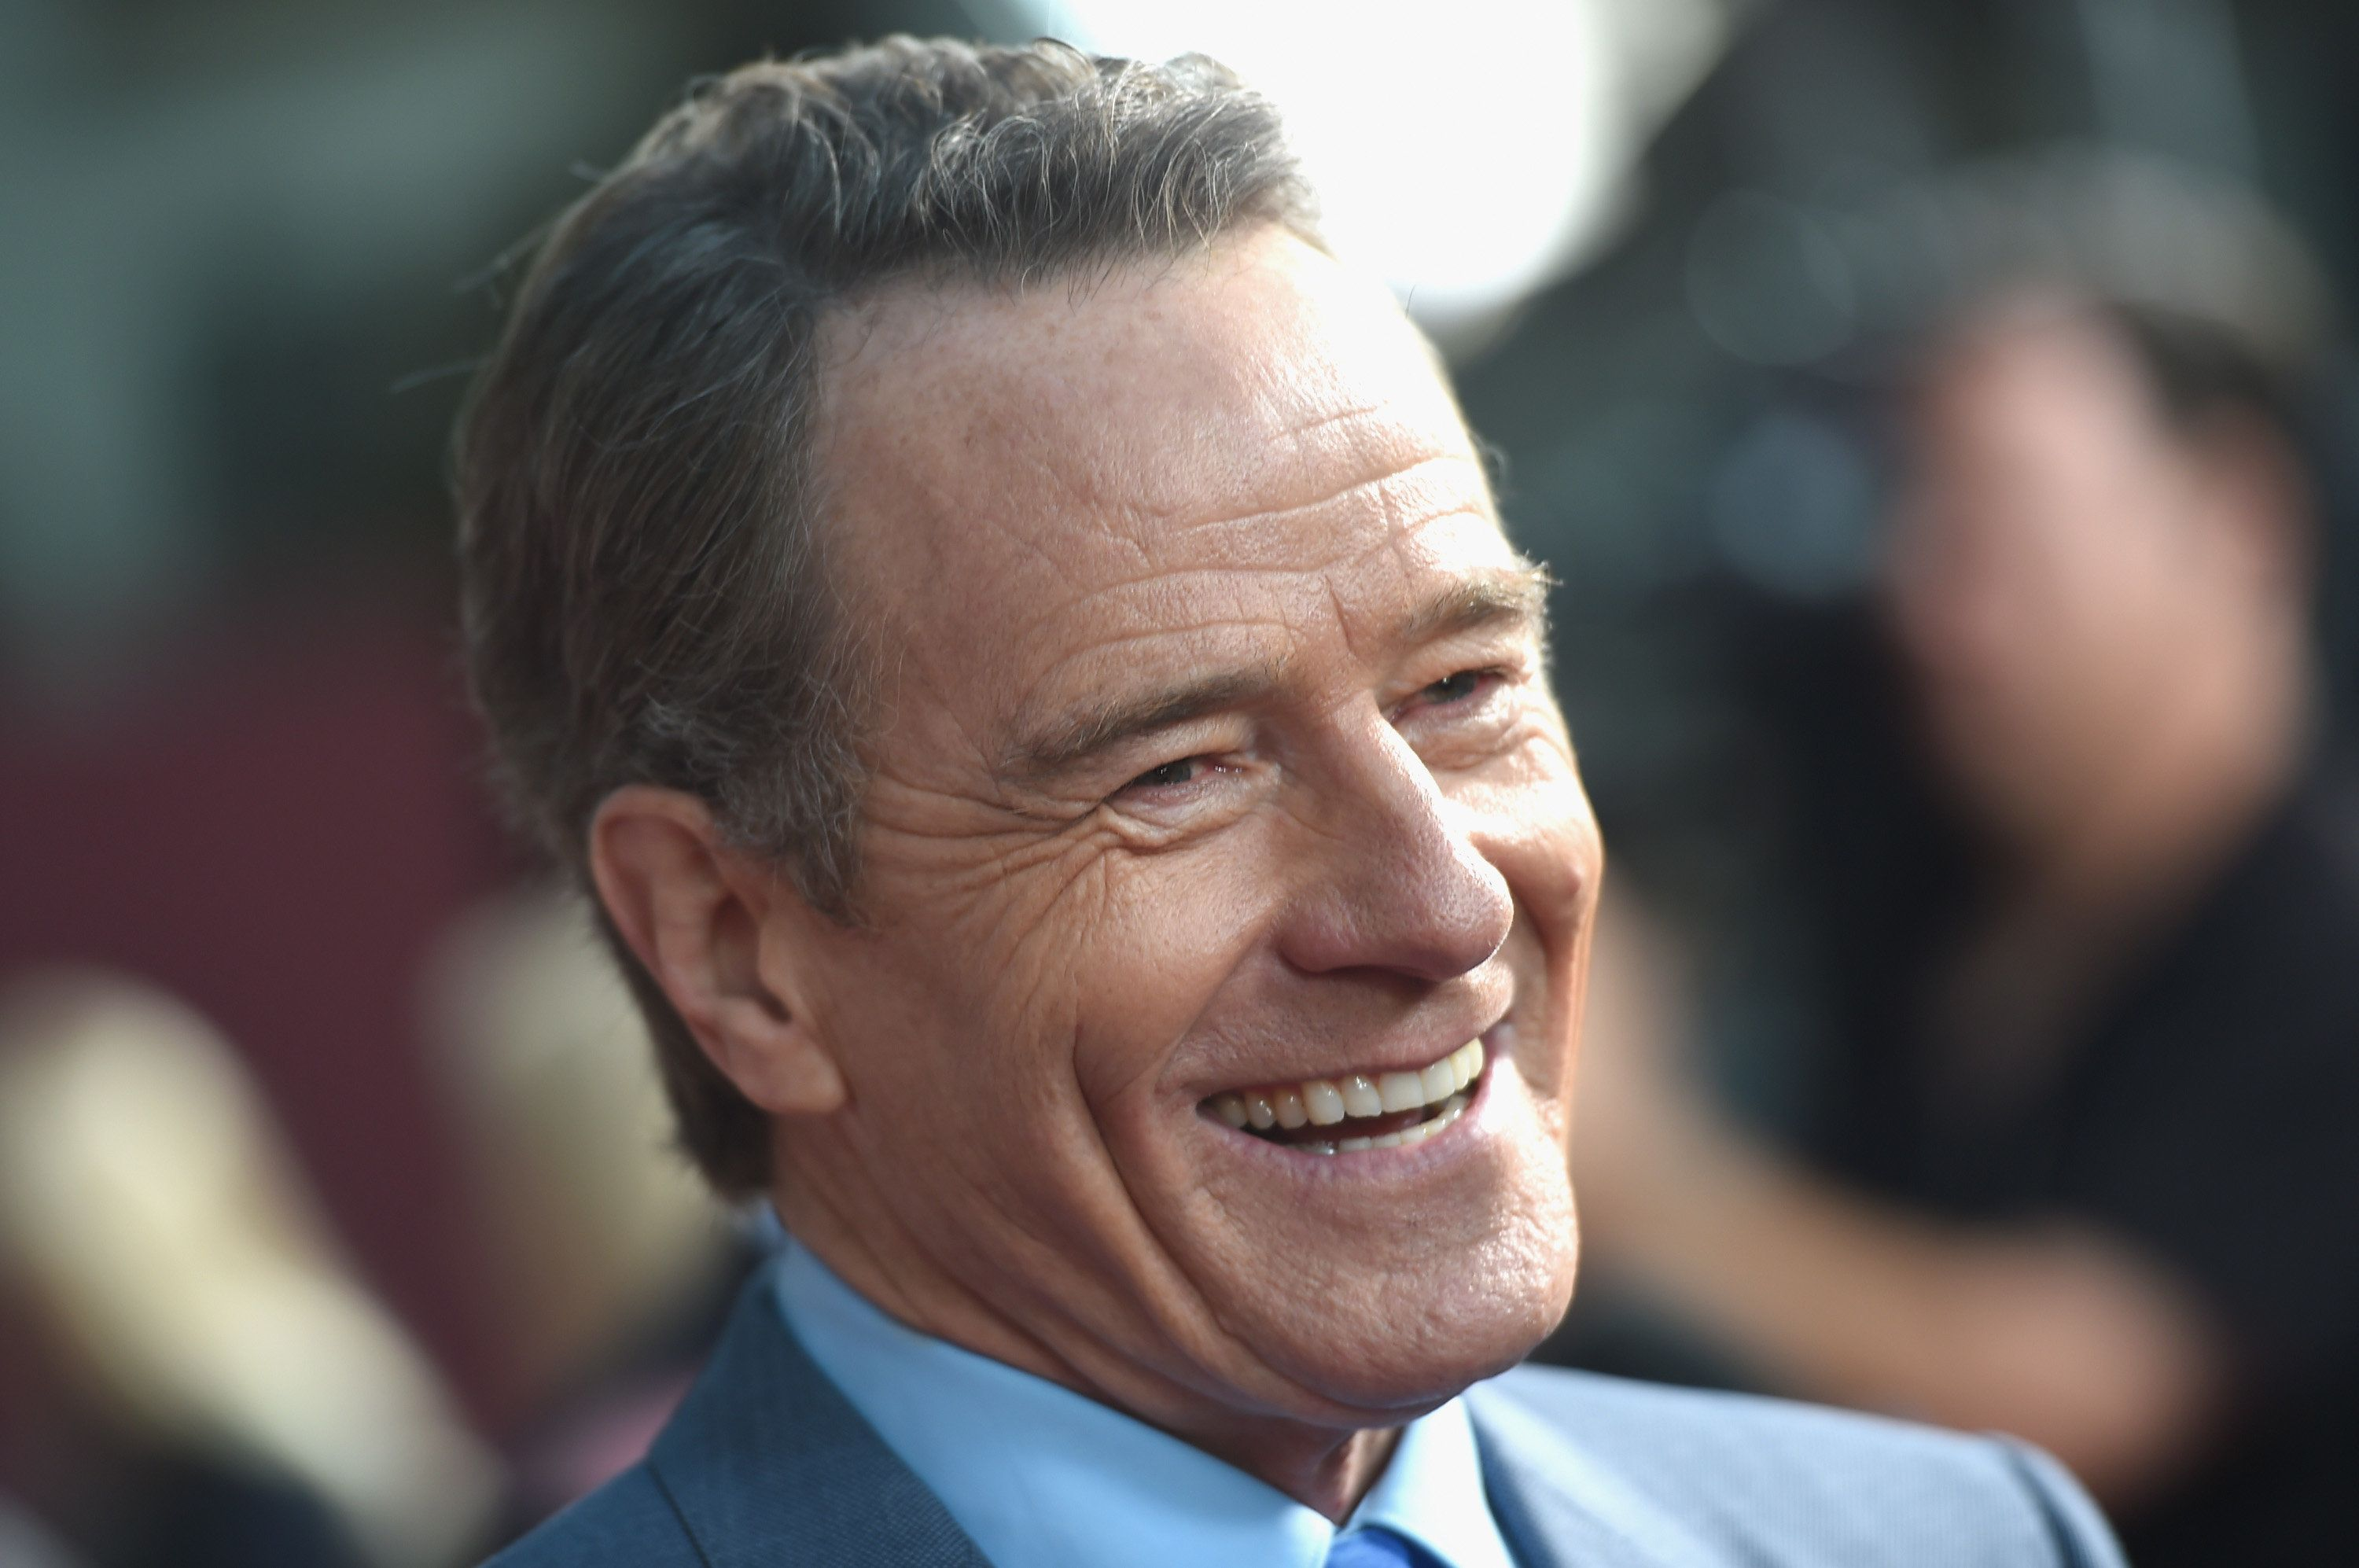 Bryan Cranston appears in Hollywood on May 10, 2016.